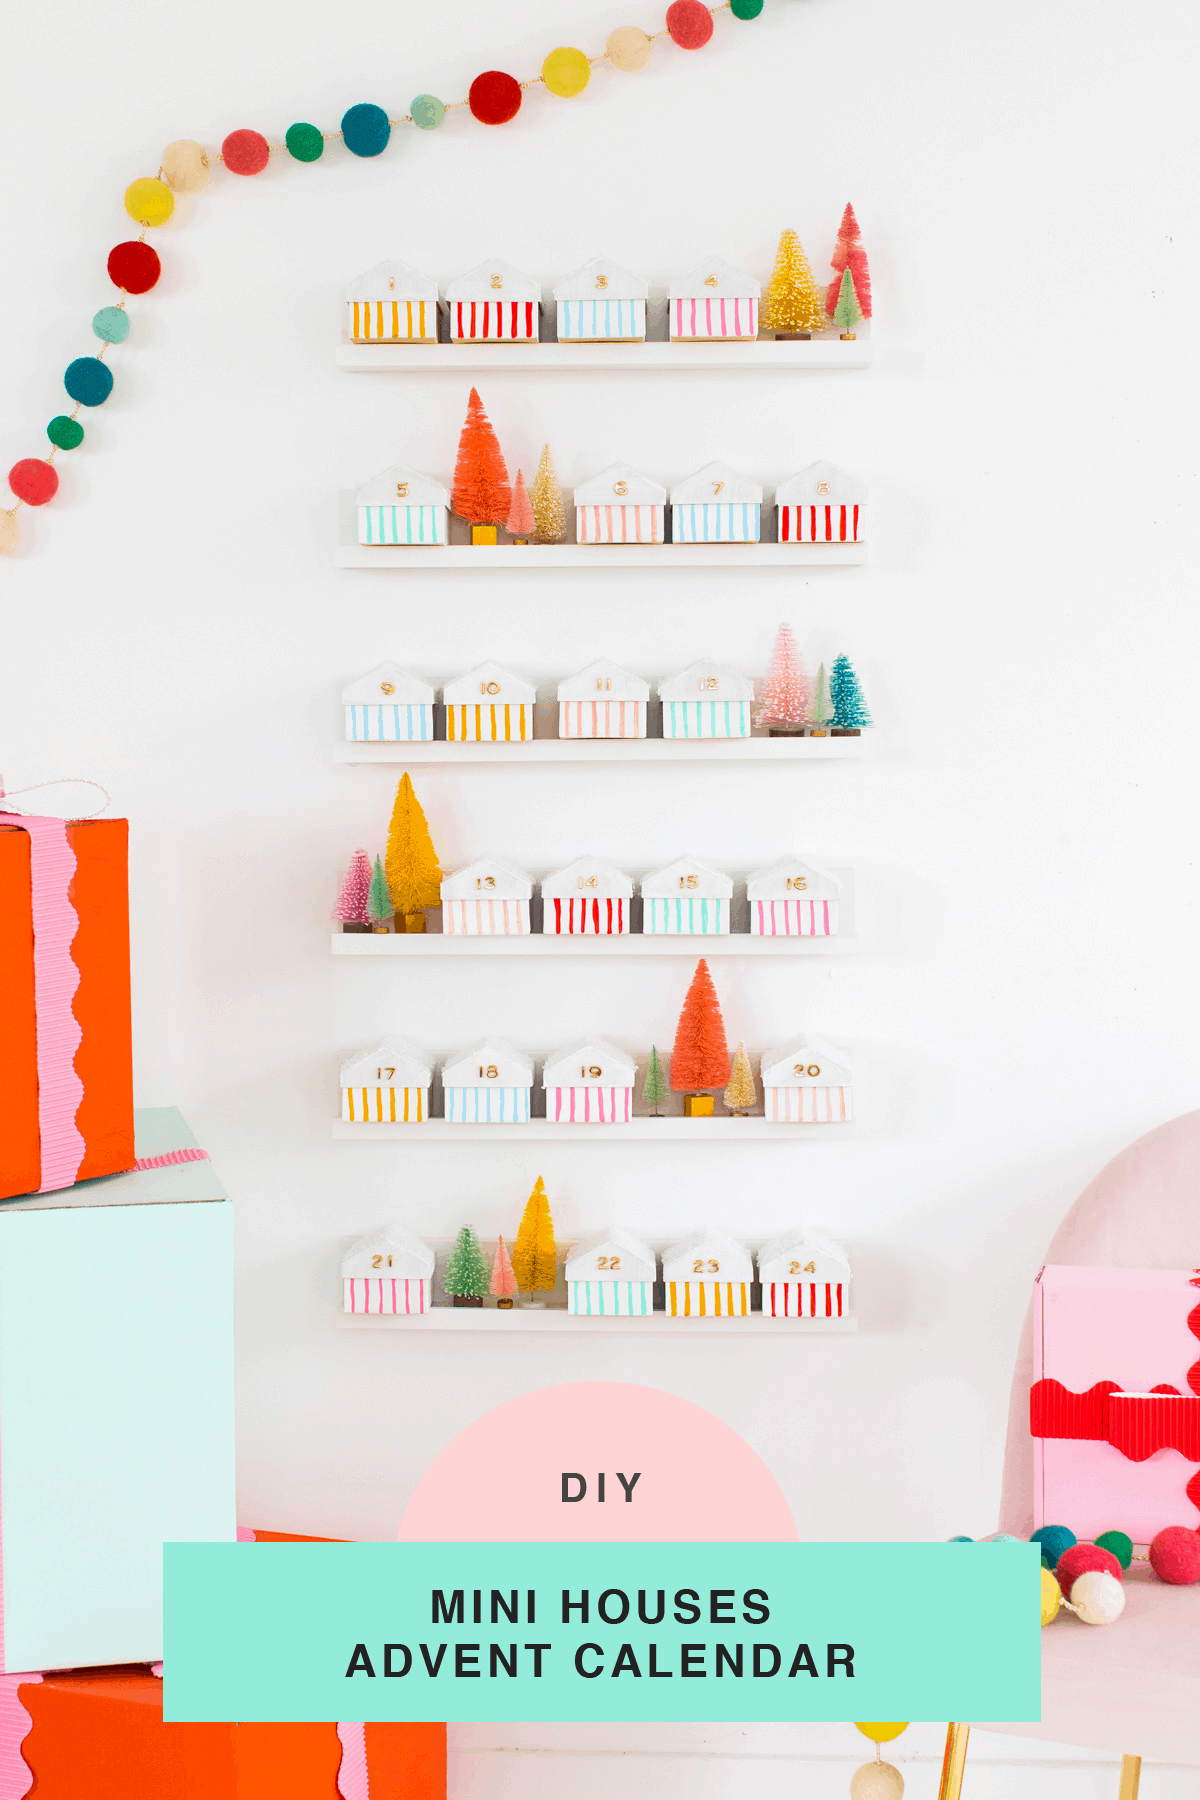 styled Christmas houses! Colorful Houses DIY Advent Calendar by top Houston lifesyle blogger Ashley Rose of Sugar and Cloth #diy #christmas #advent #holiday #decor #idea #howto #kids #crafts